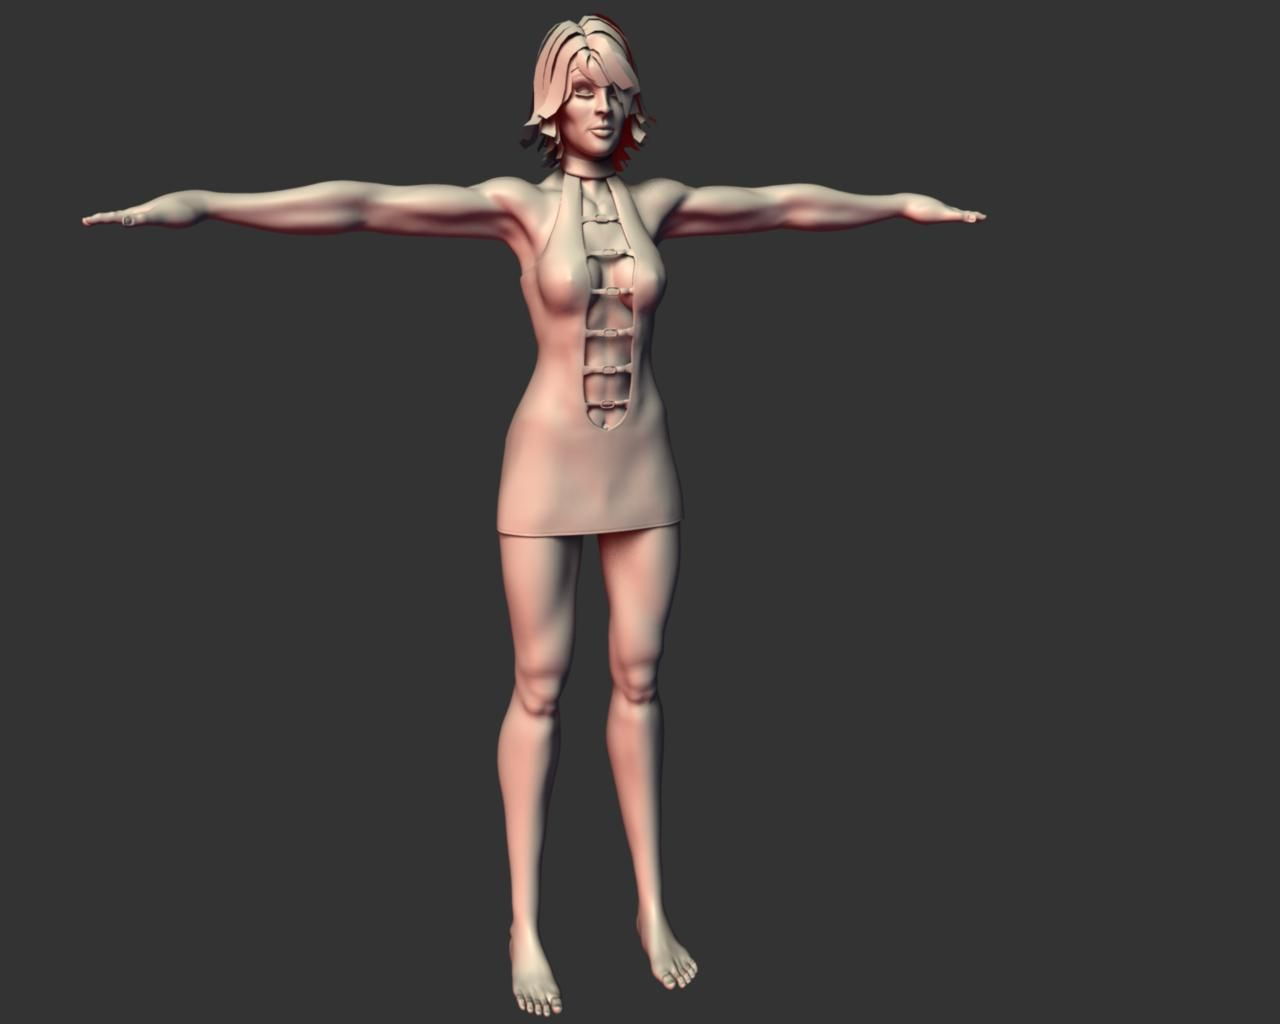 super hero female character image projectx mod for unreal